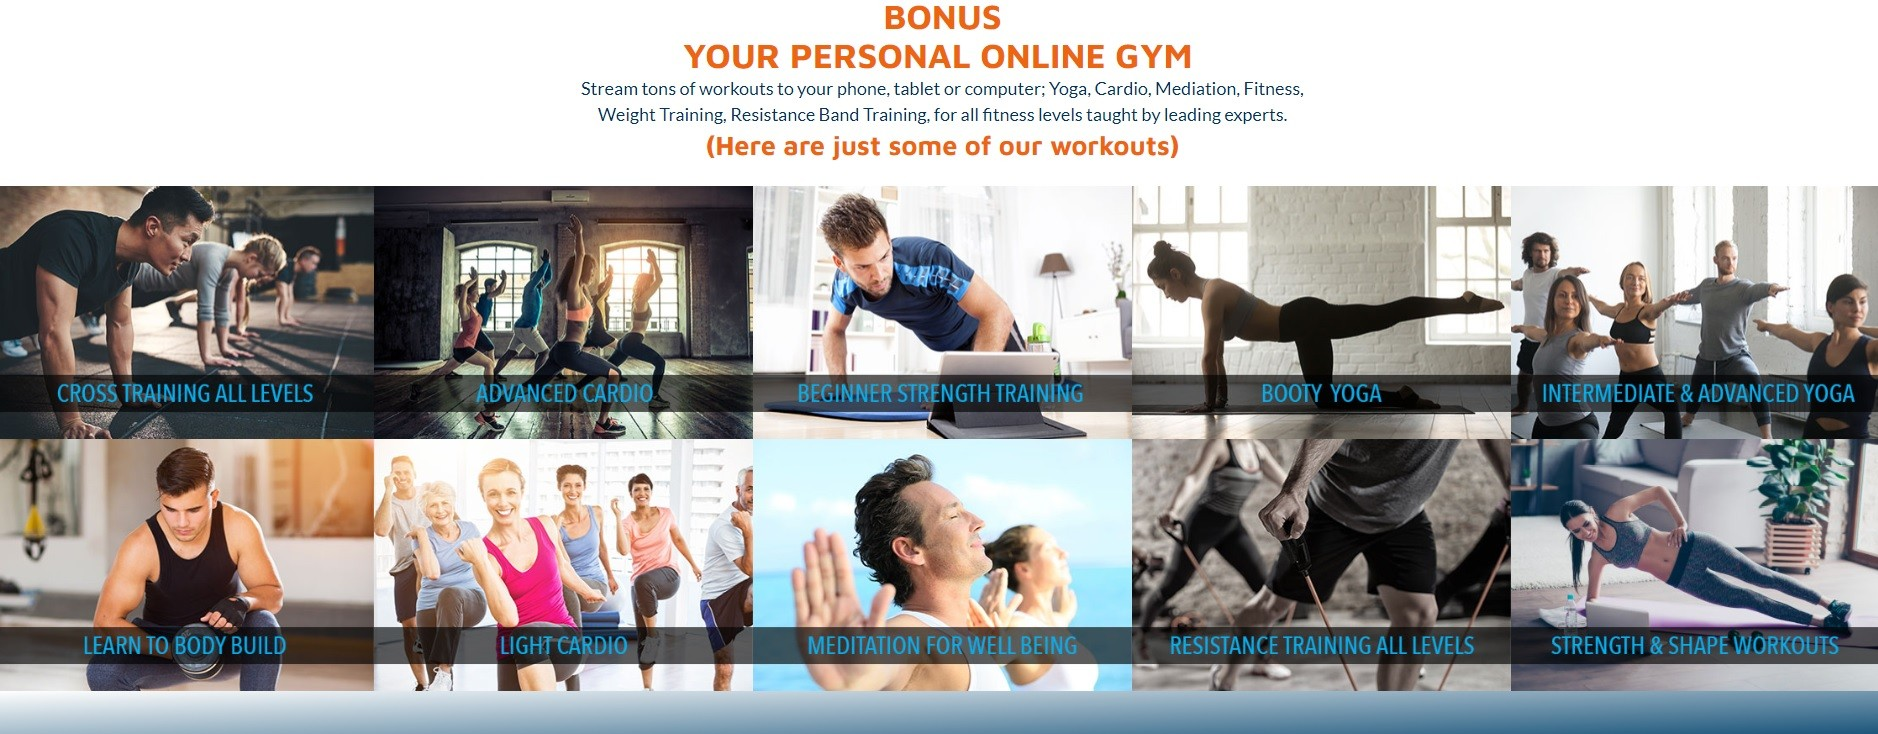 Losers Welcome Personal Online Gym